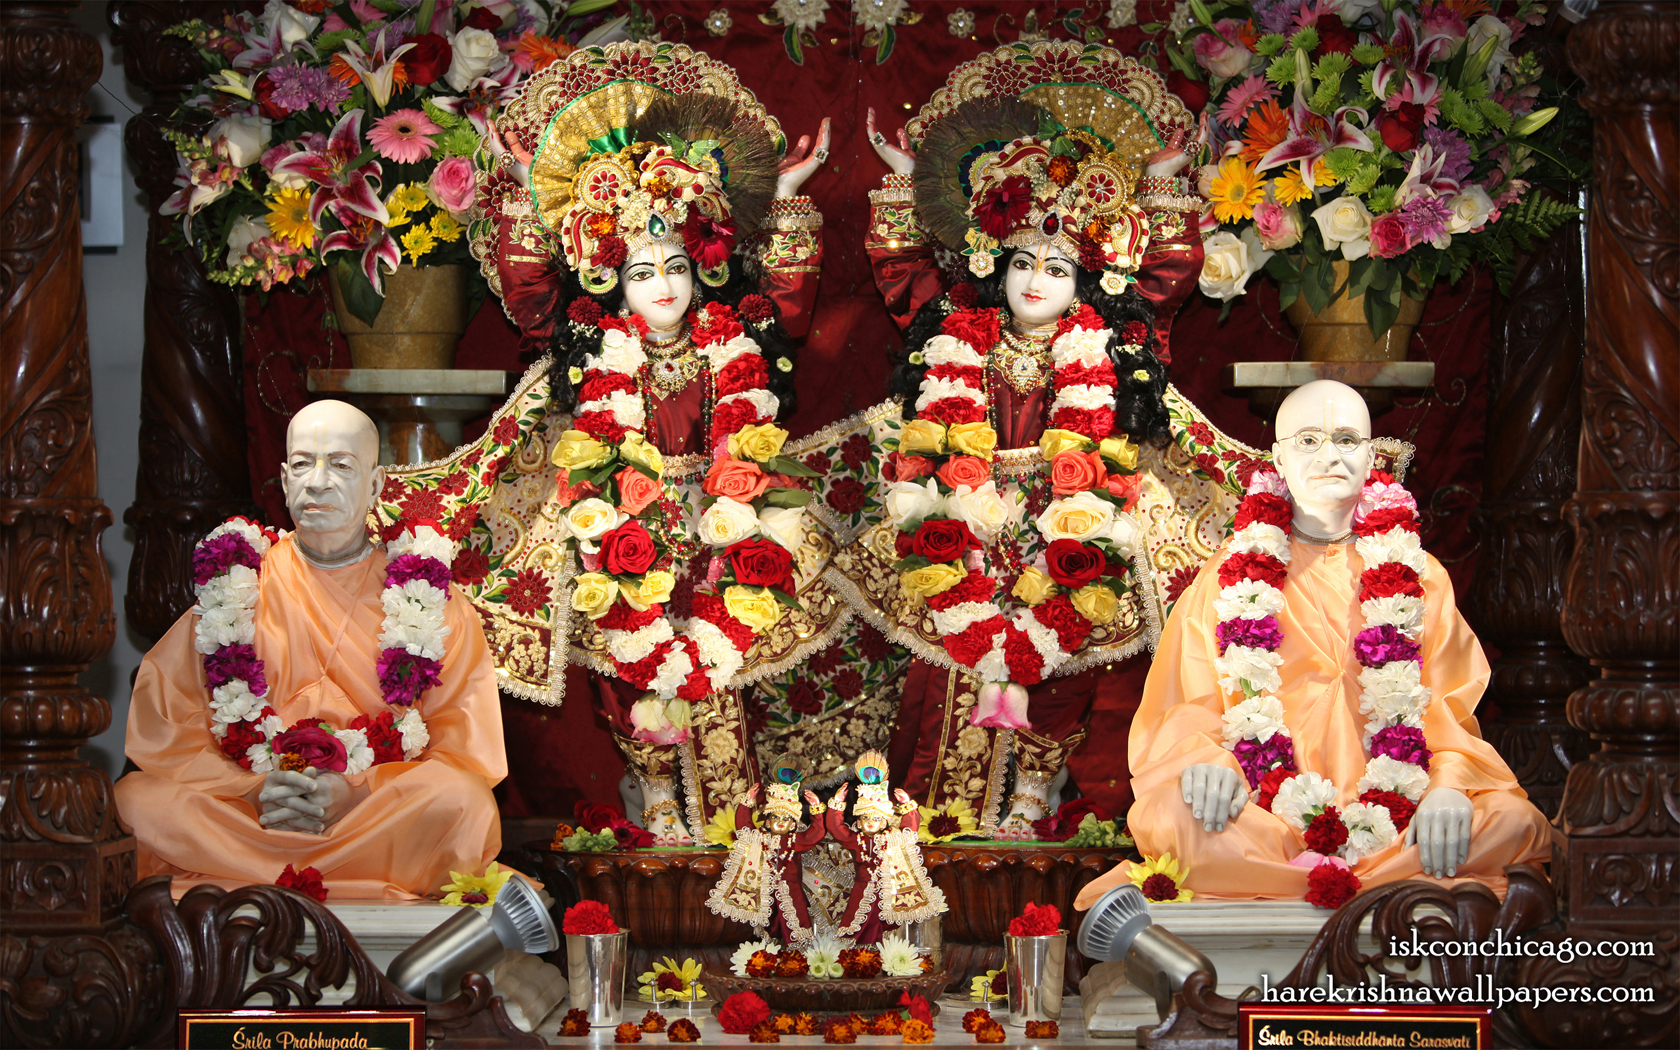 Sri Sri Gaura Nitai with Acharyas Wallpaper (001) Size 1680x1050 Download